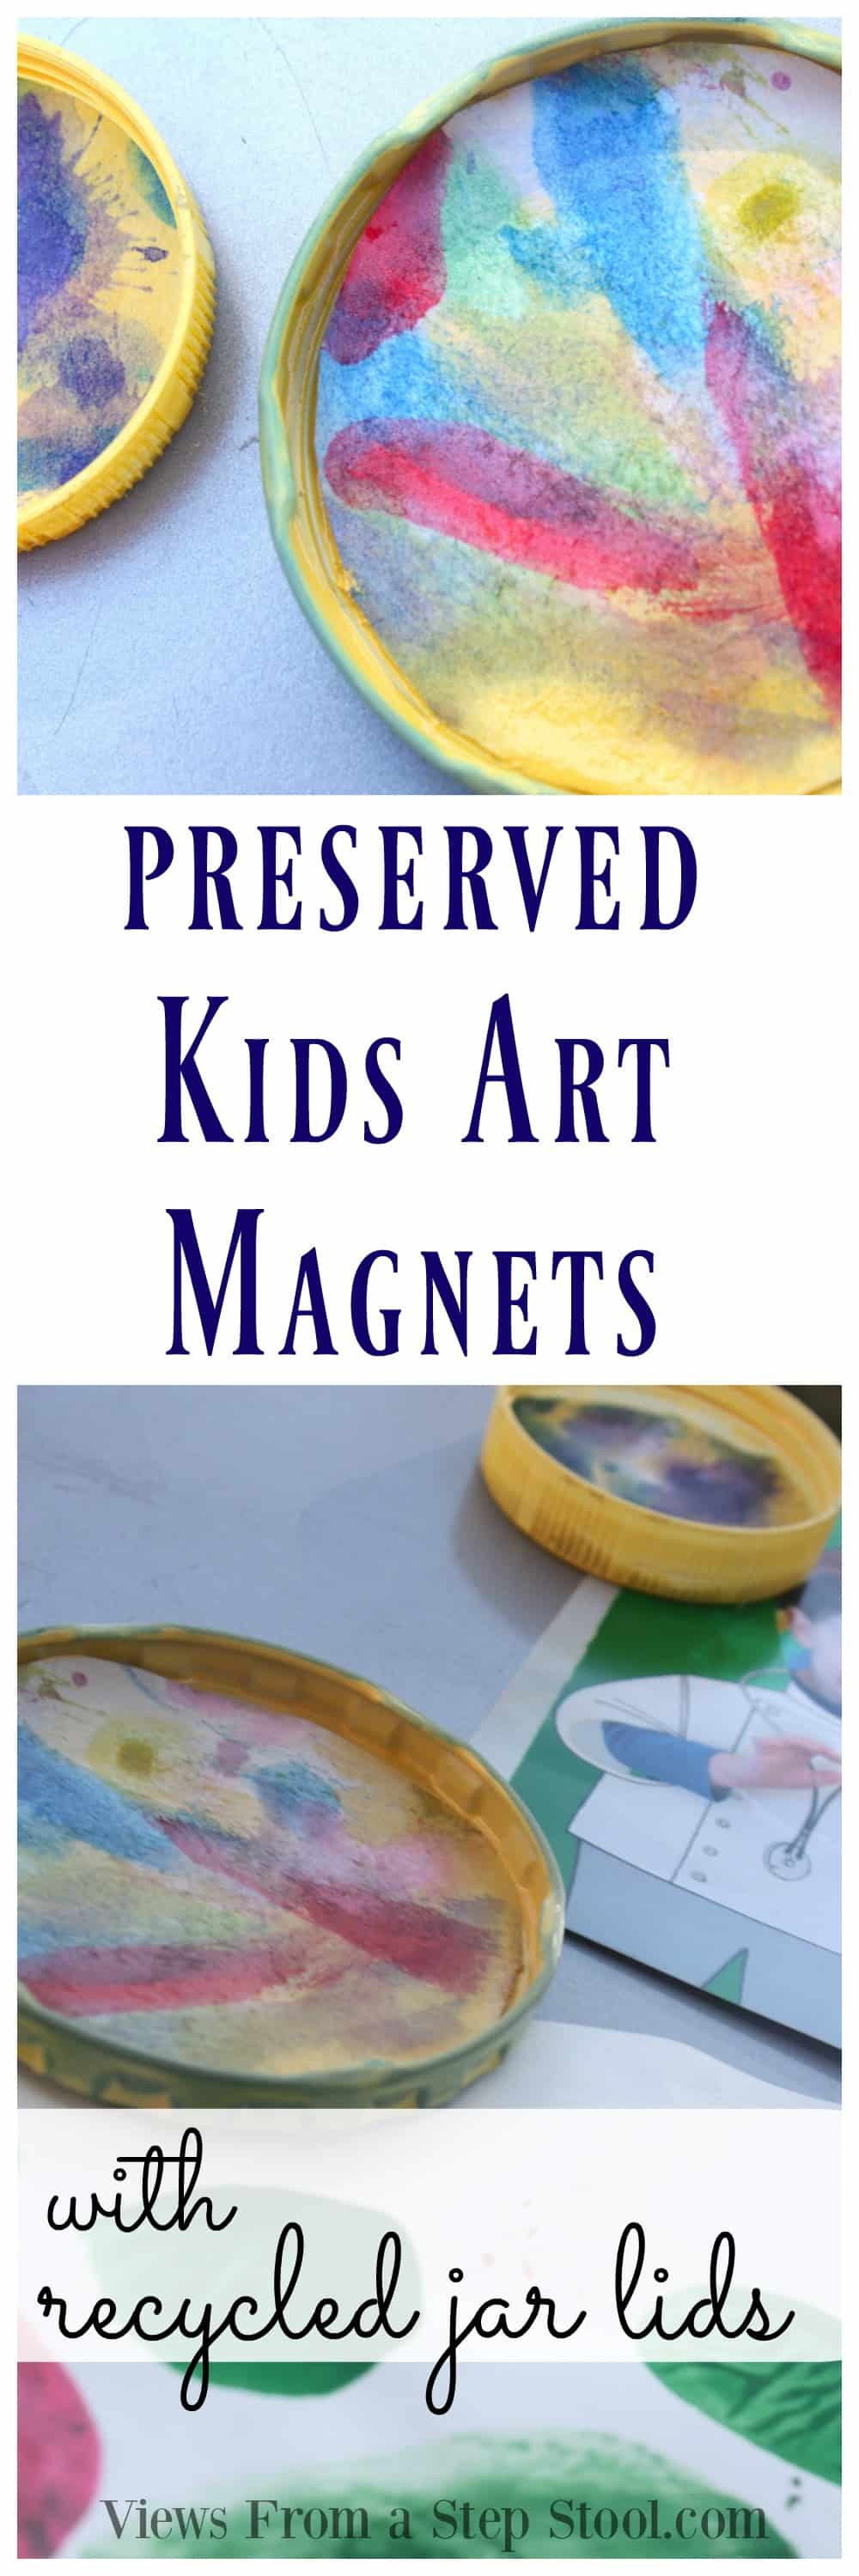 preserved-kids-art-magnets-pin